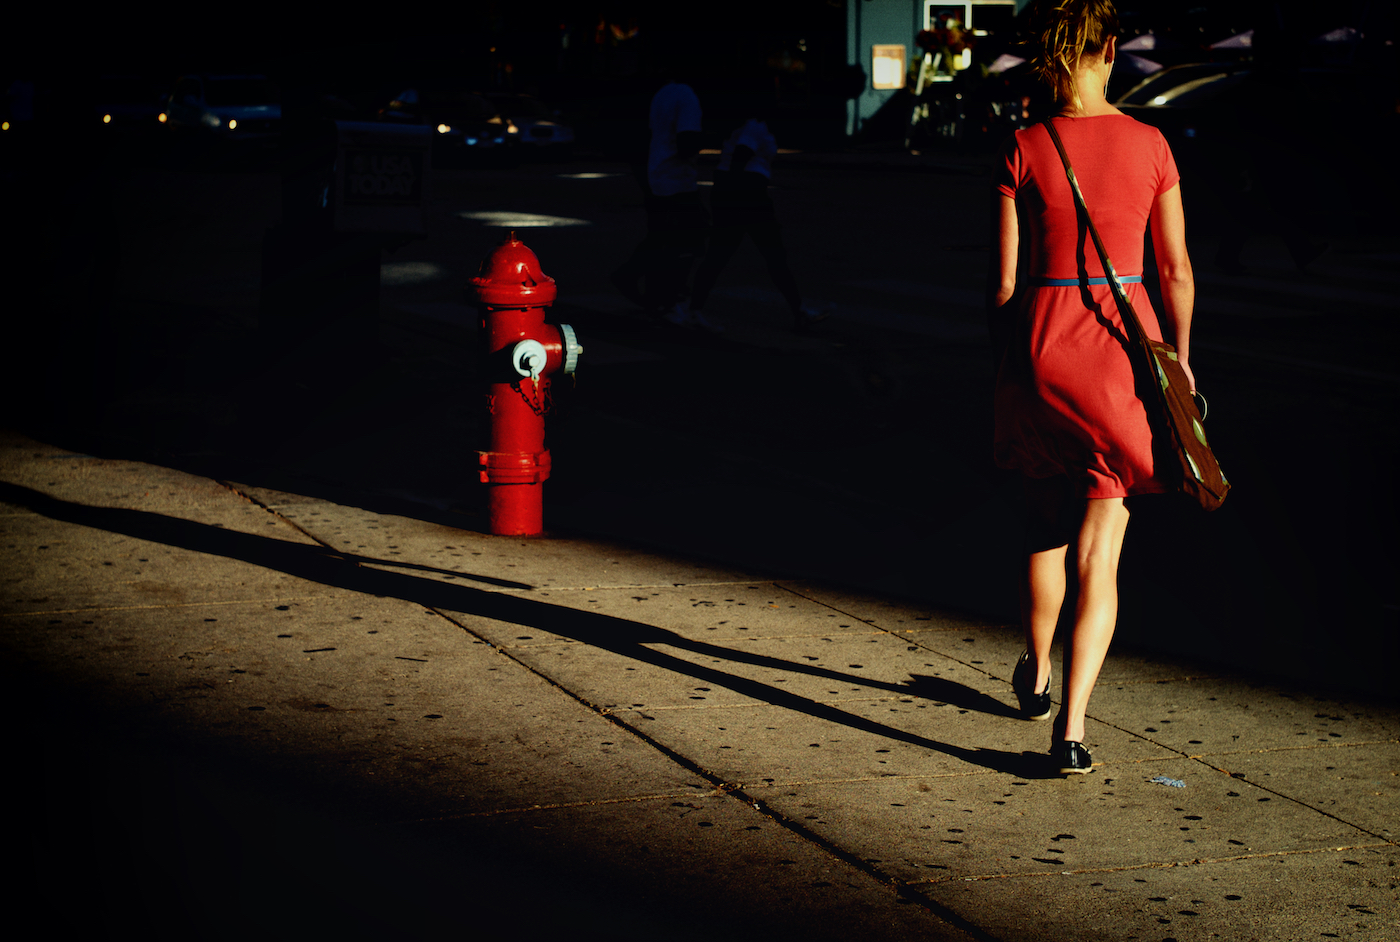 Lady in Red, Her Shadow and a Fire Hydrant , Michael T. Sullivan